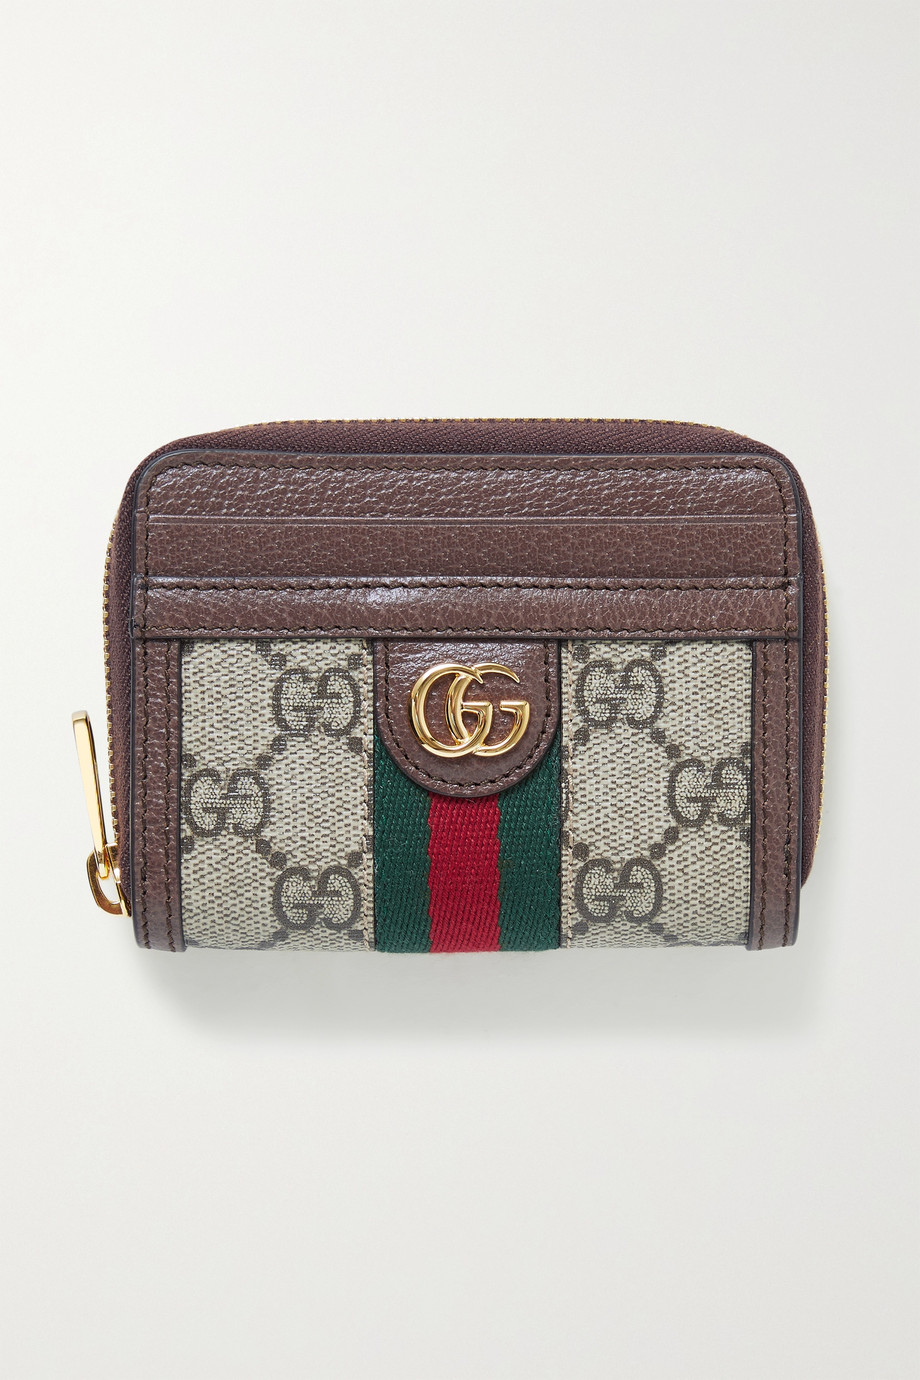 Gucci Ophidia textured leather-trimmed printed coated-canvas wallet